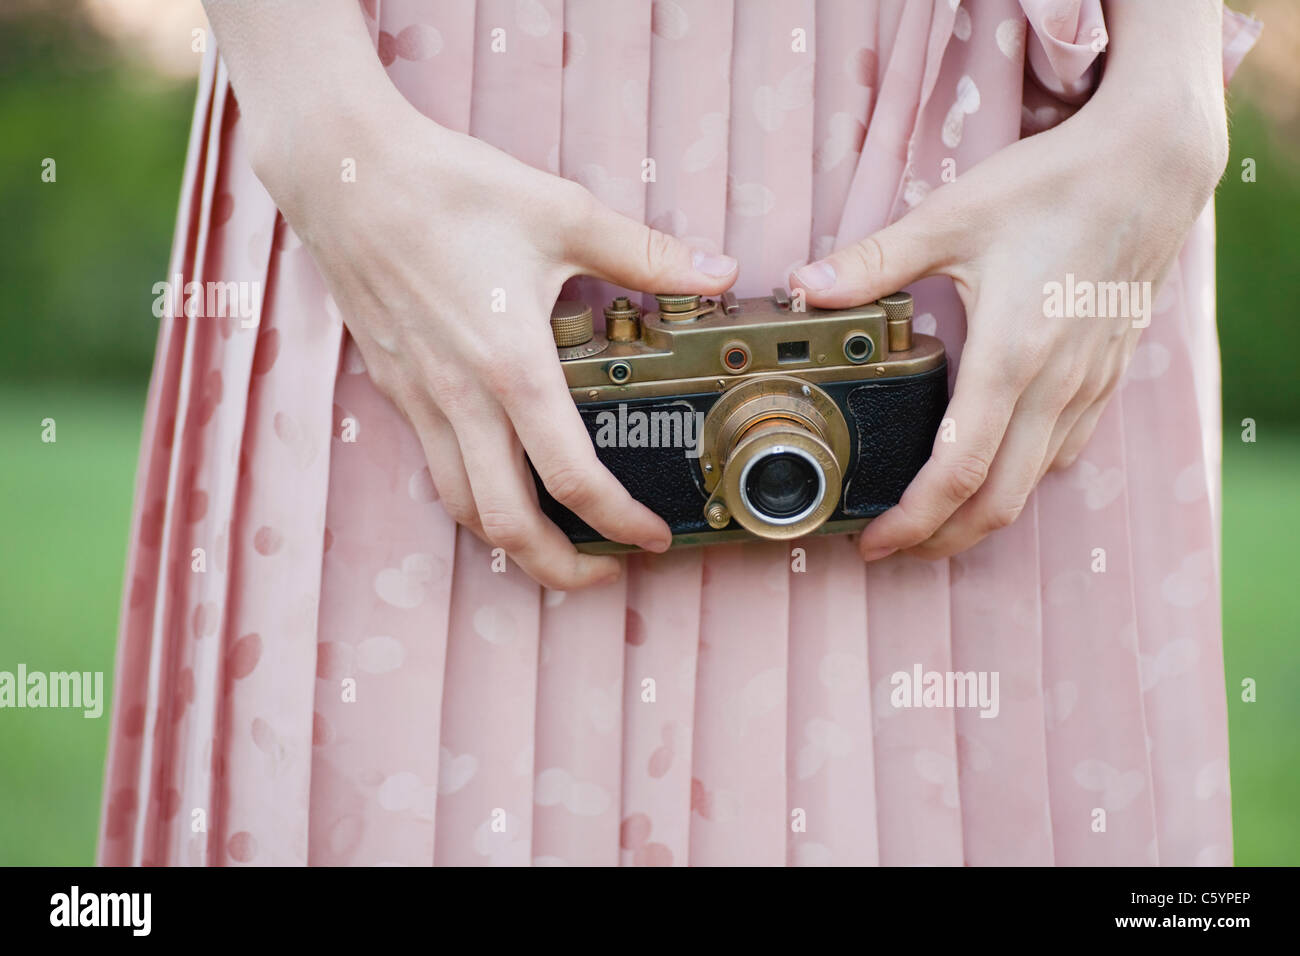 Russia, Voronezh, midsection of woman holding old camera - Stock Image